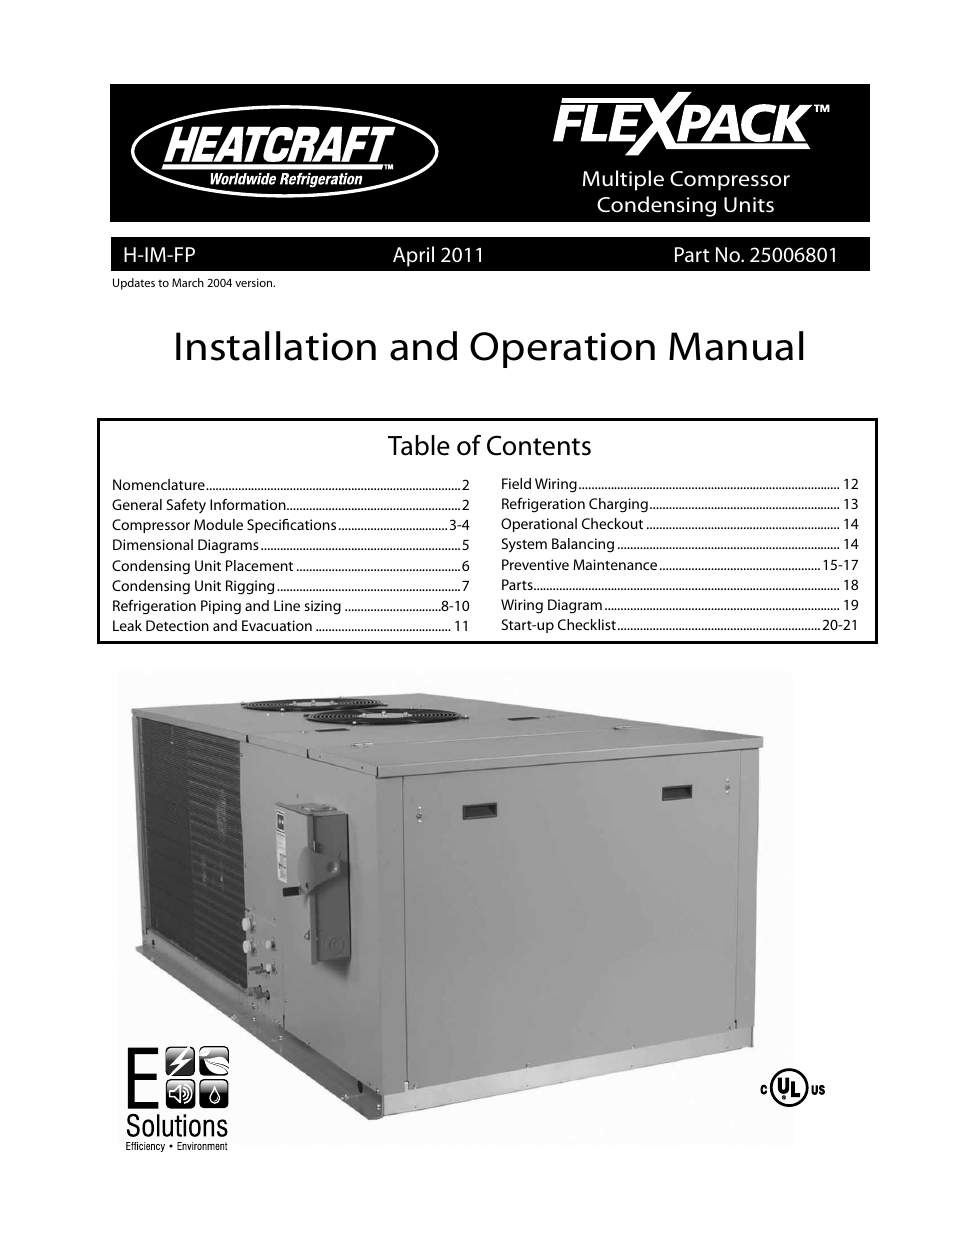 heatcraft refrigeration products flexpack user manual heatcraft refrigeration products flexpack 25006801 user manual 24 pages